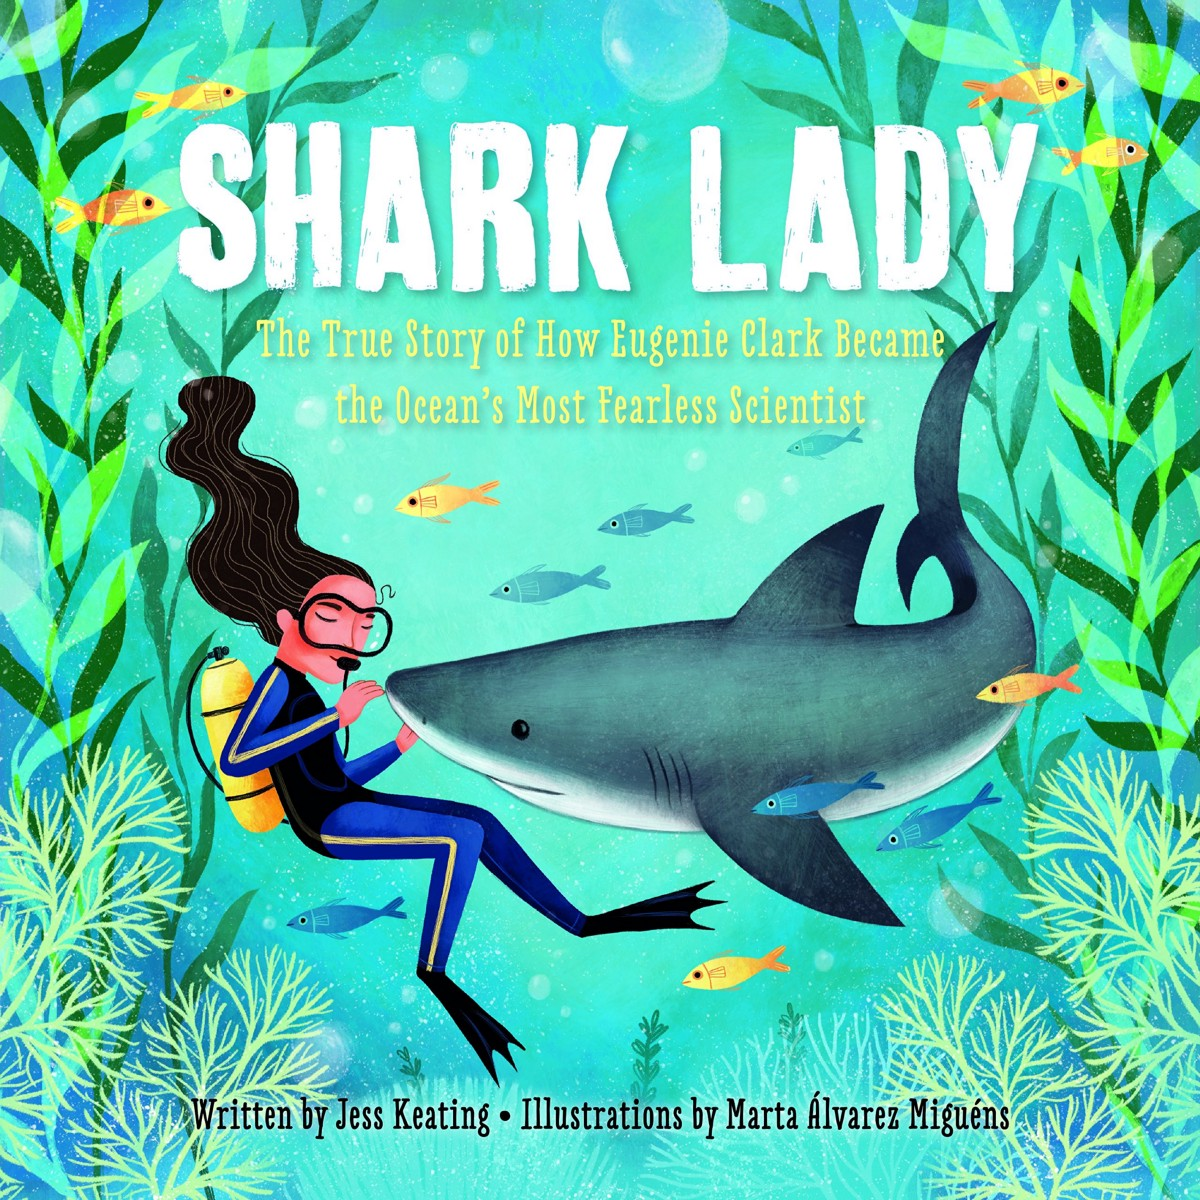 Shark Lady The True Story Of How Eugenie Clark Became Oceans Most Fearless Scientist By Jess Keating Illustrated Marta Alvarez Miguens